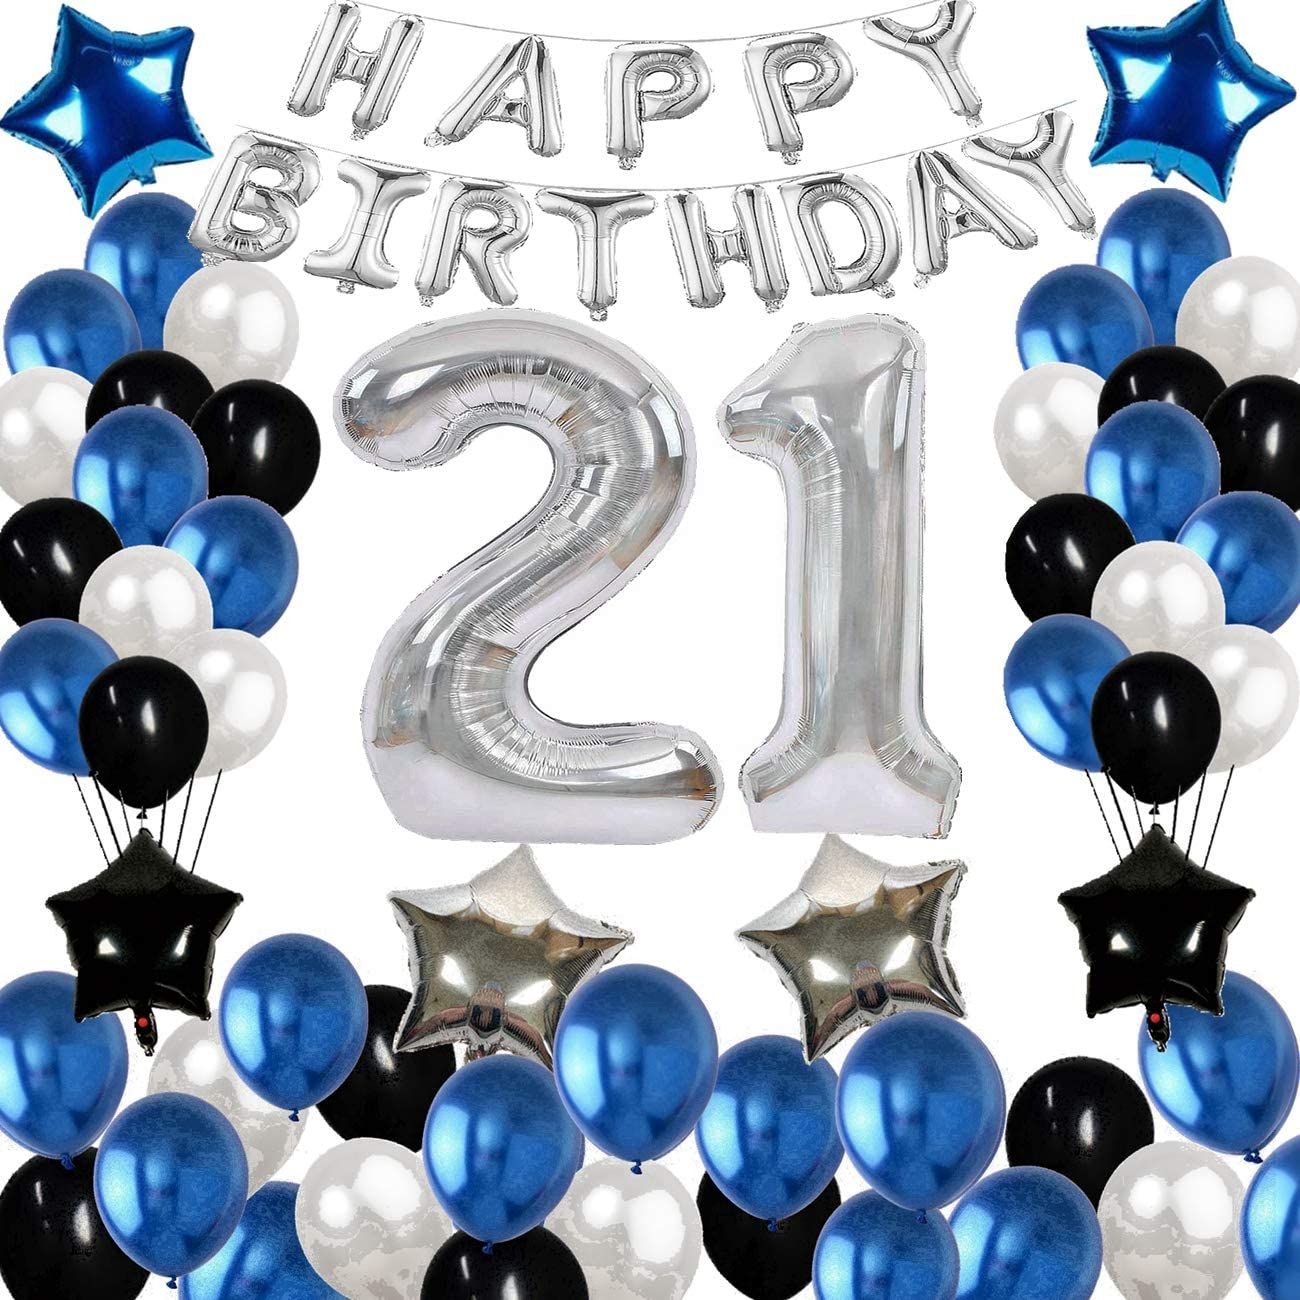 Amazon Com 21st Birthday Decorations 12 21 Years Old Birthday Party Decoration Supplies With Happy Birthday Banner Happy Birthday Balloons Decor Perfect For Girls And Boys Blue Silver And Black 80 Pcs